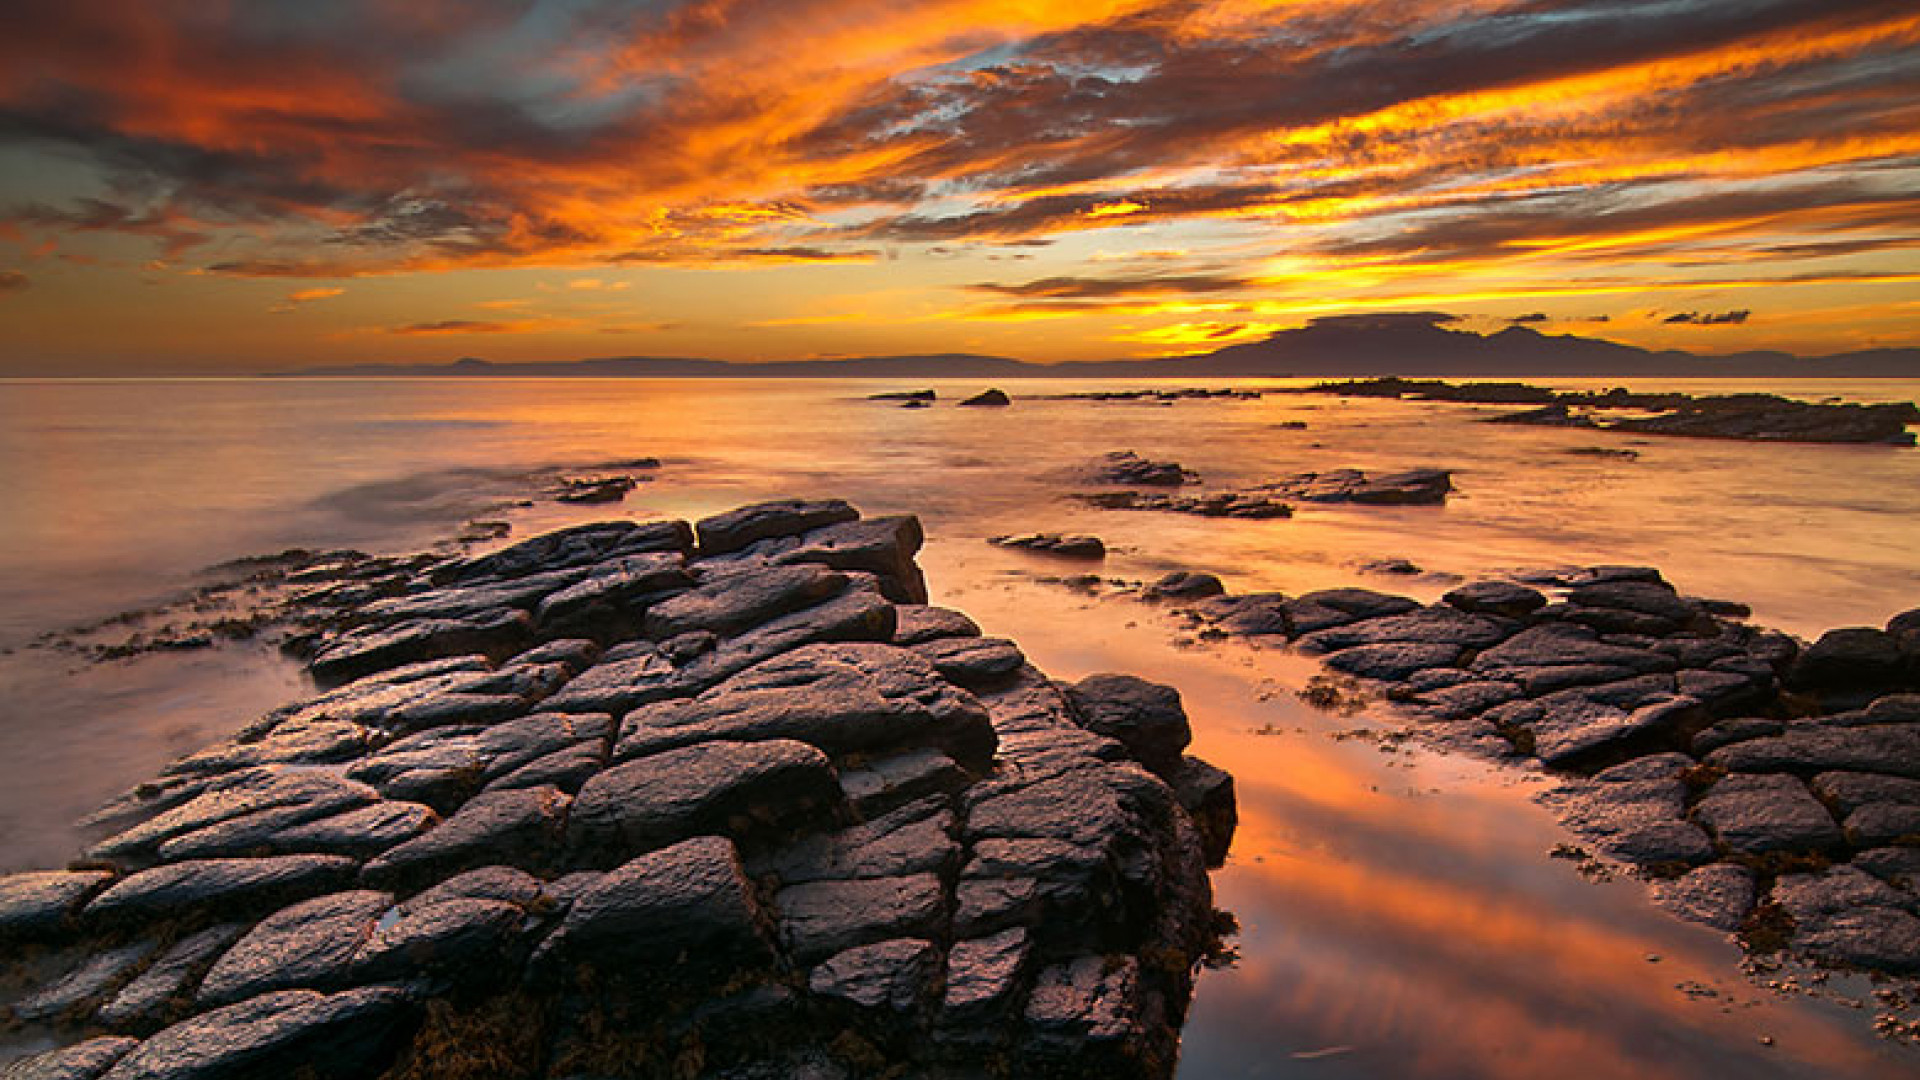 Fiery-Sky-over-the-Isle-of-Arran,-Firth-of-Clyde,-Scotland-by-Peter-Ribbeck-(Take-a-view,-2013)